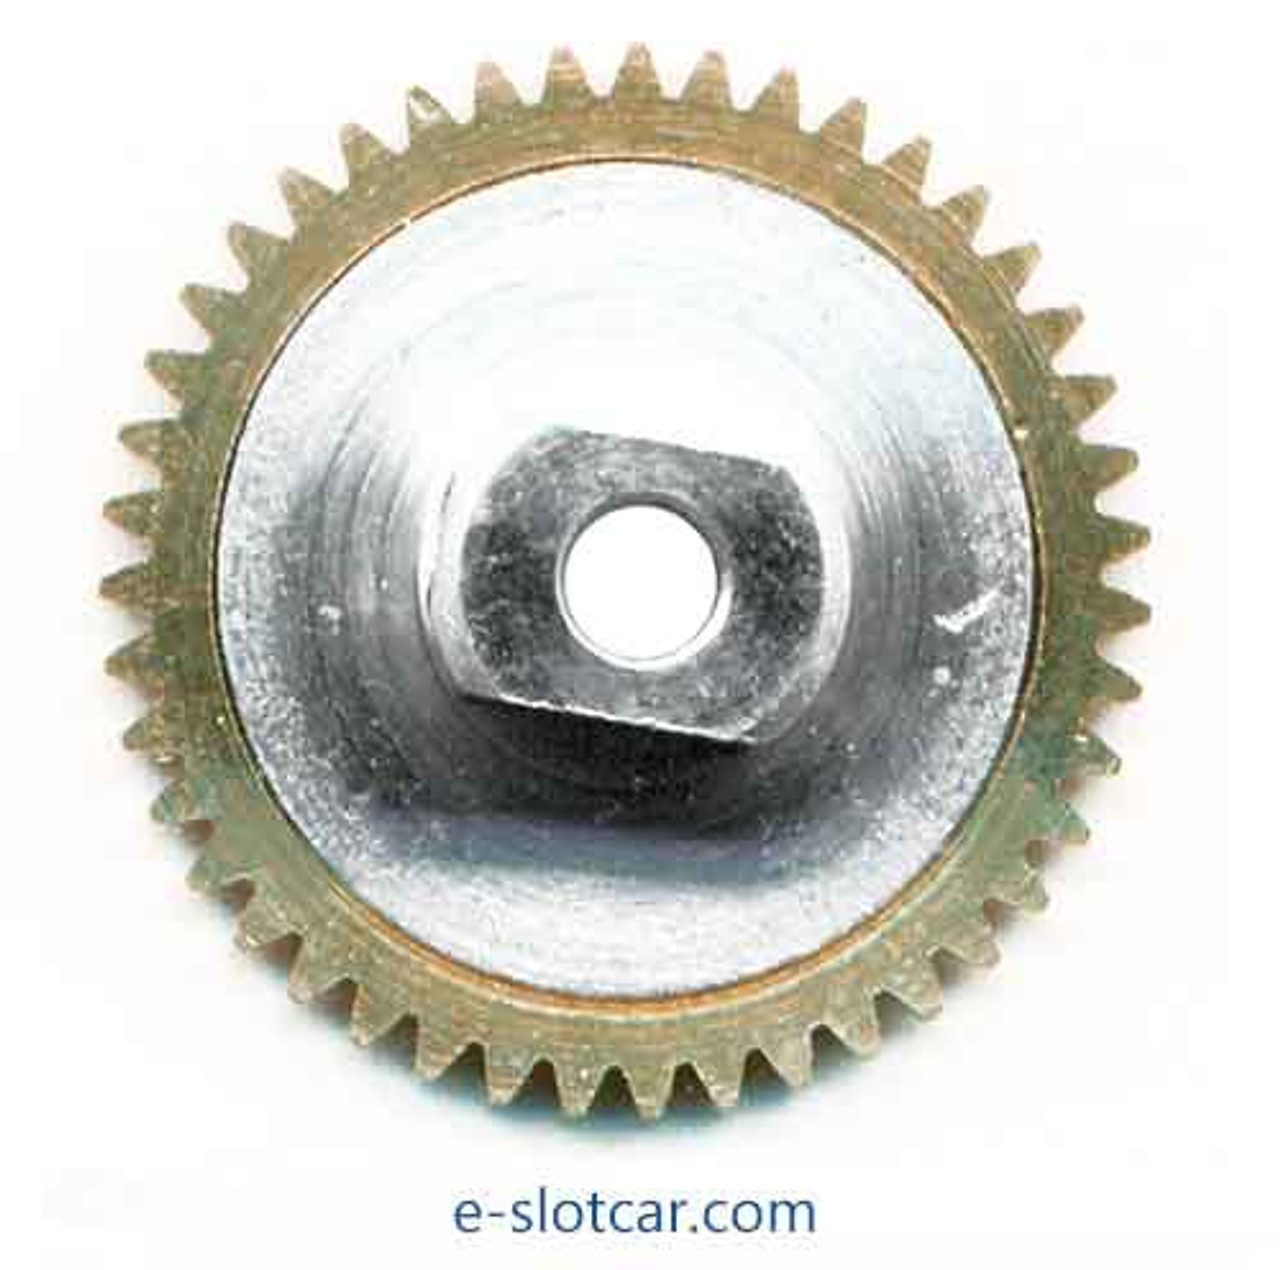 GT1 43 Tooth 16° Angled Metal Gear - GT-7243B